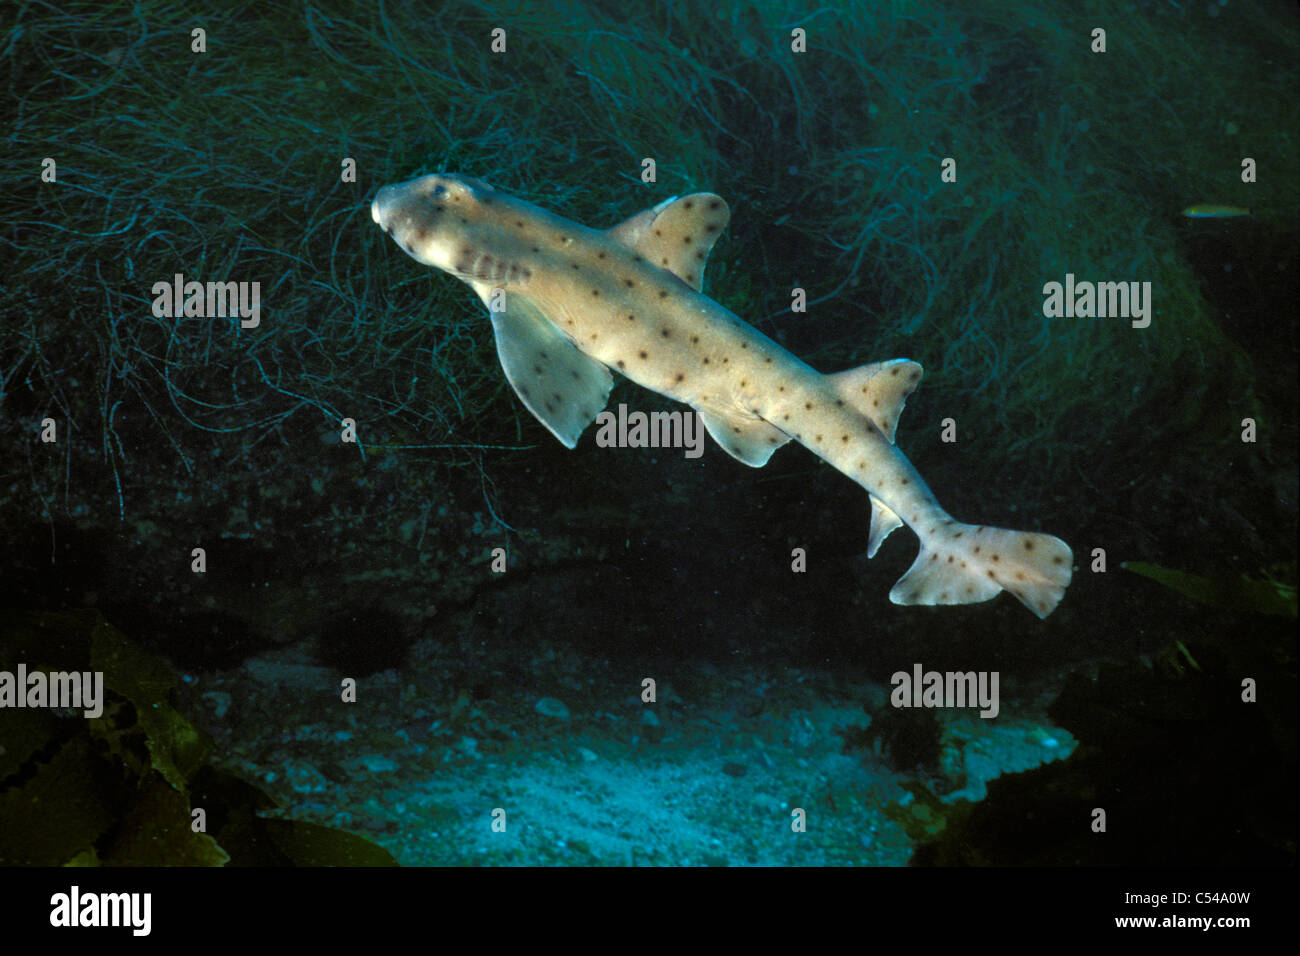 Horn shark, Heterodontus francisci, Santa Cruz Island, Channel Islands National Marine Sanctuary, California, Pacific - Stock Image